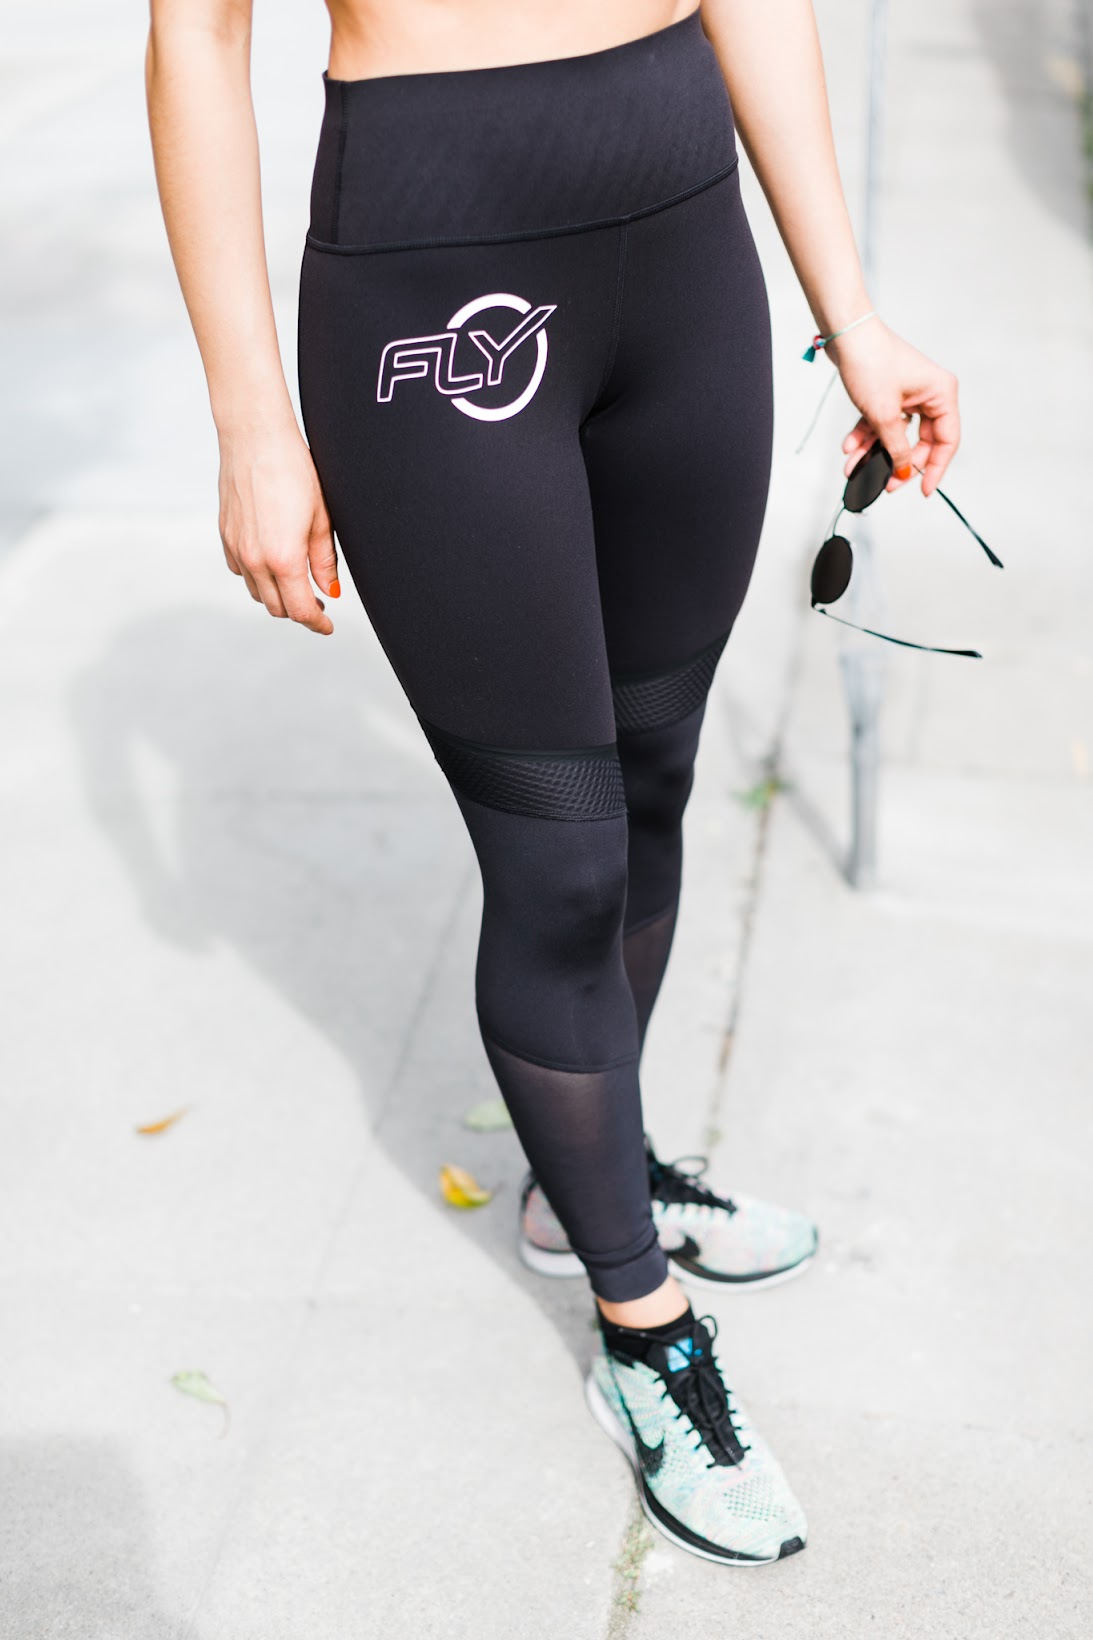 Flywheel, Flywheel ambassador, New Balance leggings, New Balance pullover, Nike air max 270, training for 10K, San Francisco